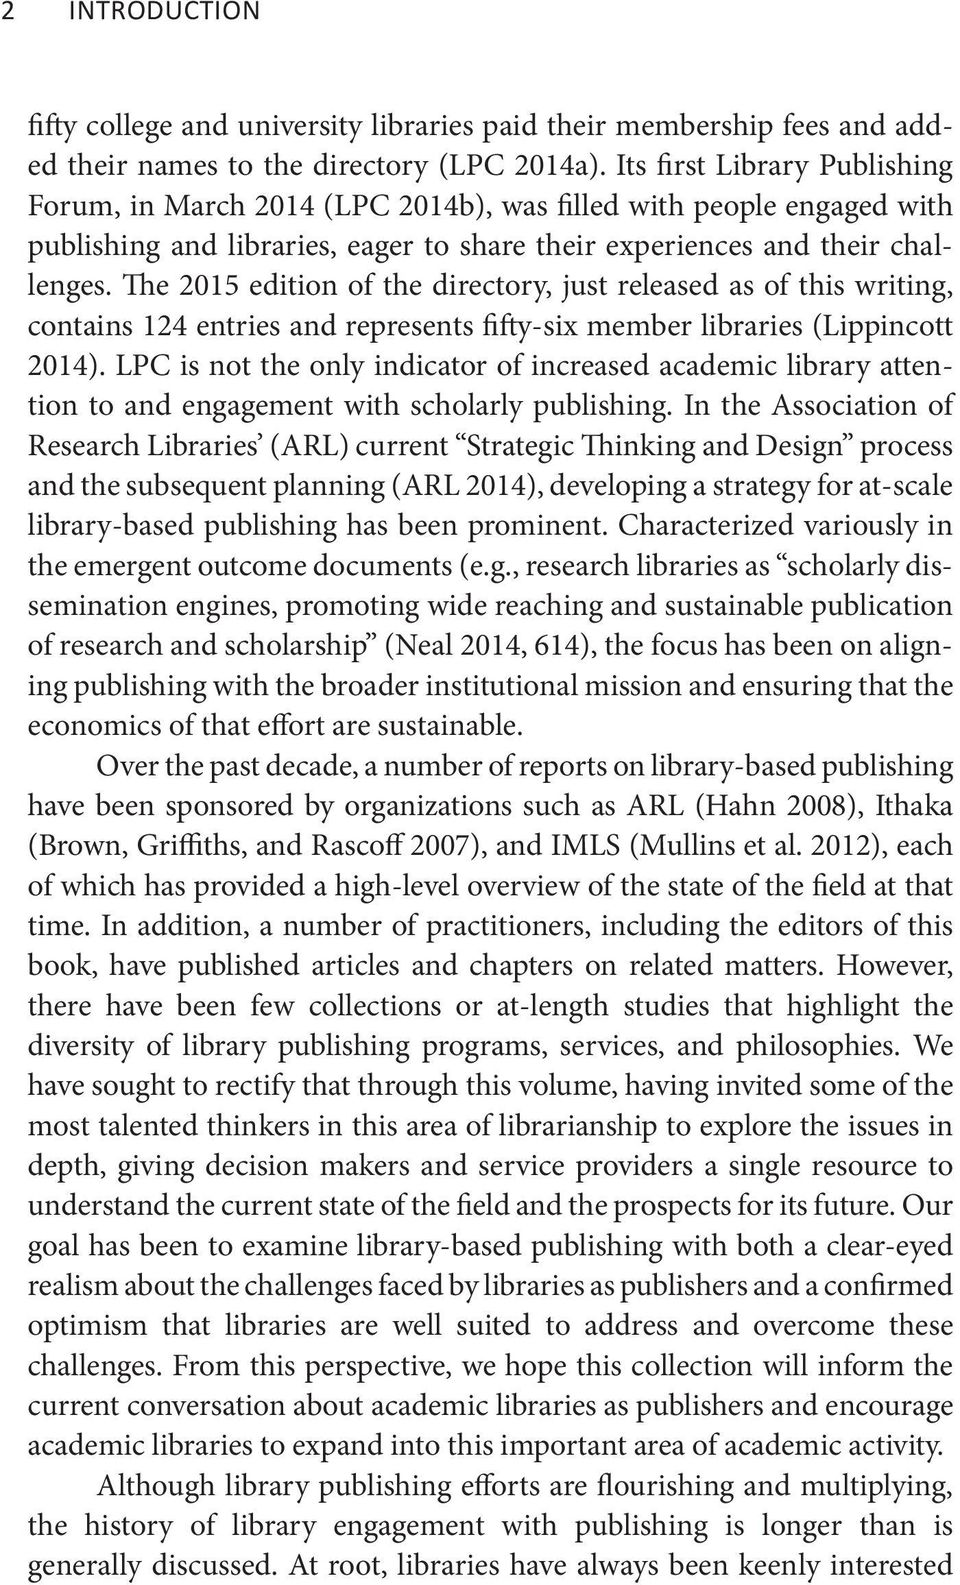 The 2015 edition of the directory, just released as of this writing, contains 124 entries and represents fifty-six member libraries (Lippincott 2014).